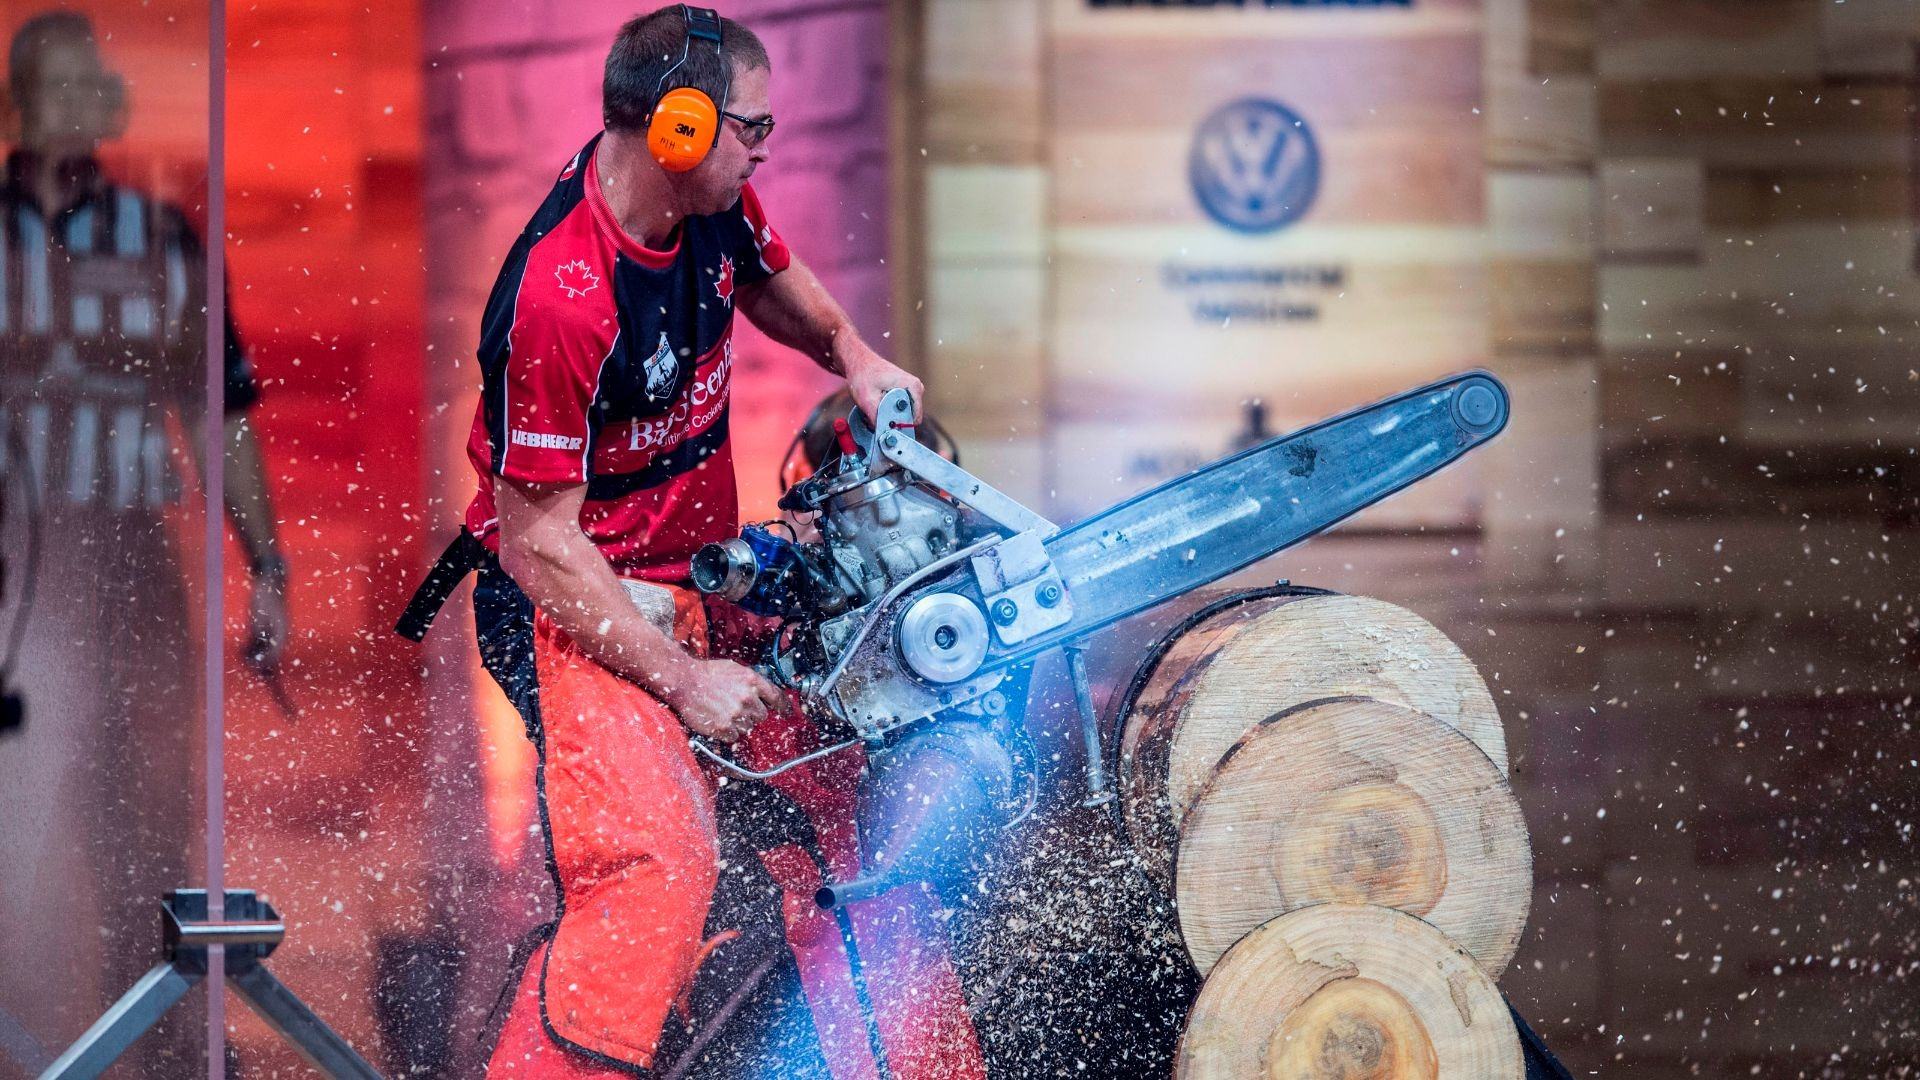 Mitch Hewitt of Canada in the Hot Saw discipline.